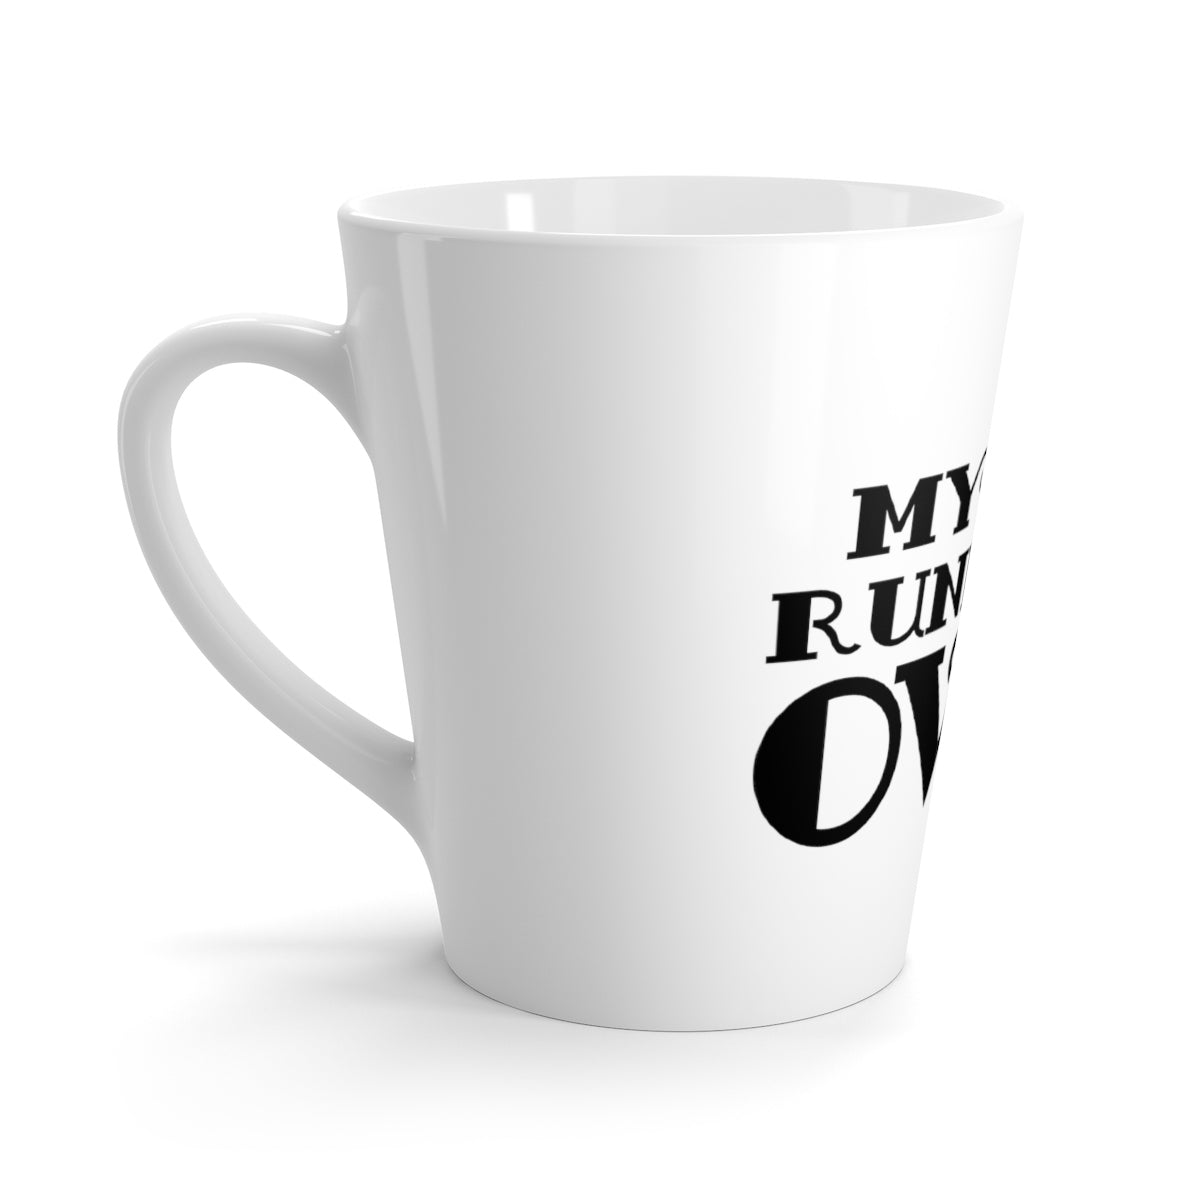 Odyssey My Cup Runneth Over Latte Mug - Mug - Odyssey By Yendi